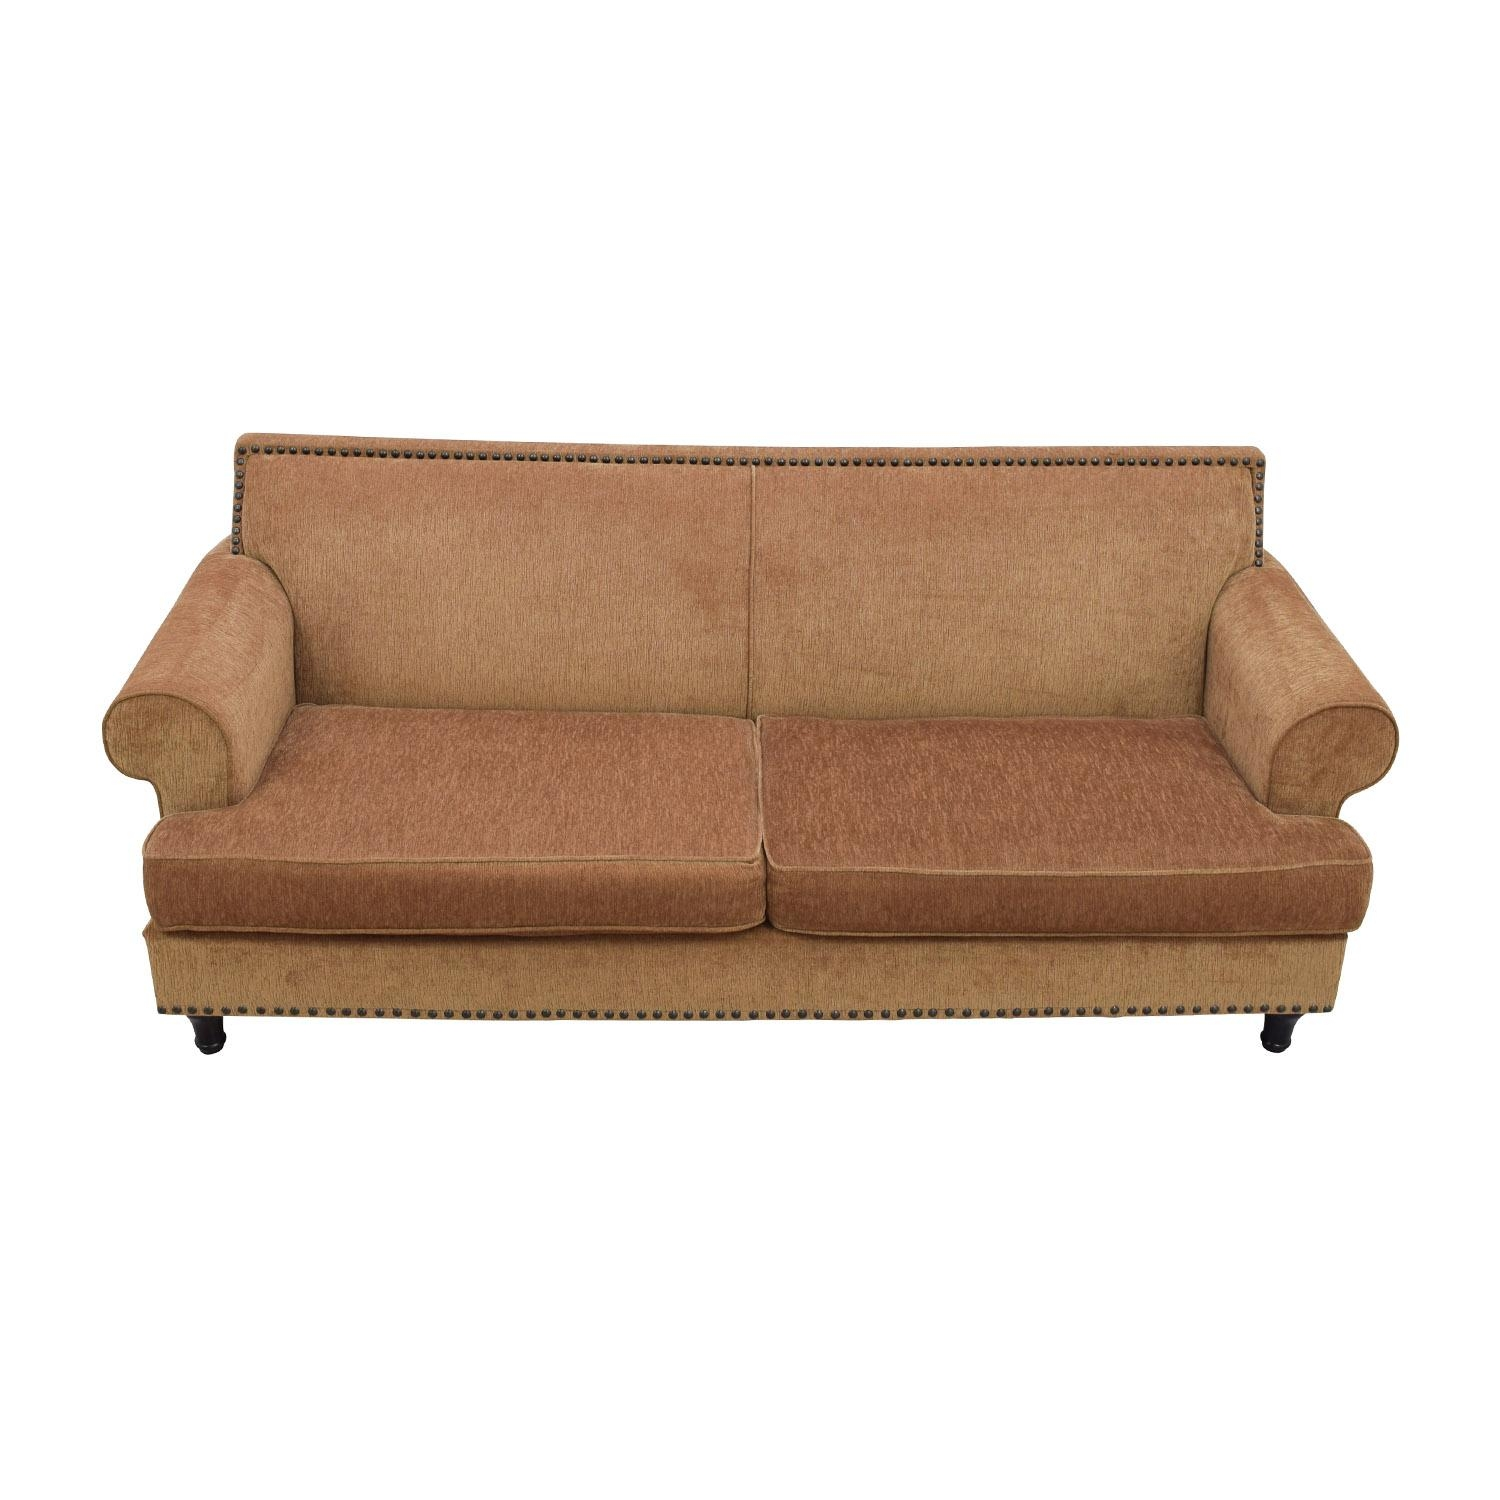 Top Brand Classic Sofas On Sale With Regard To Pier 1 Sofa Beds (Image 20 of 20)